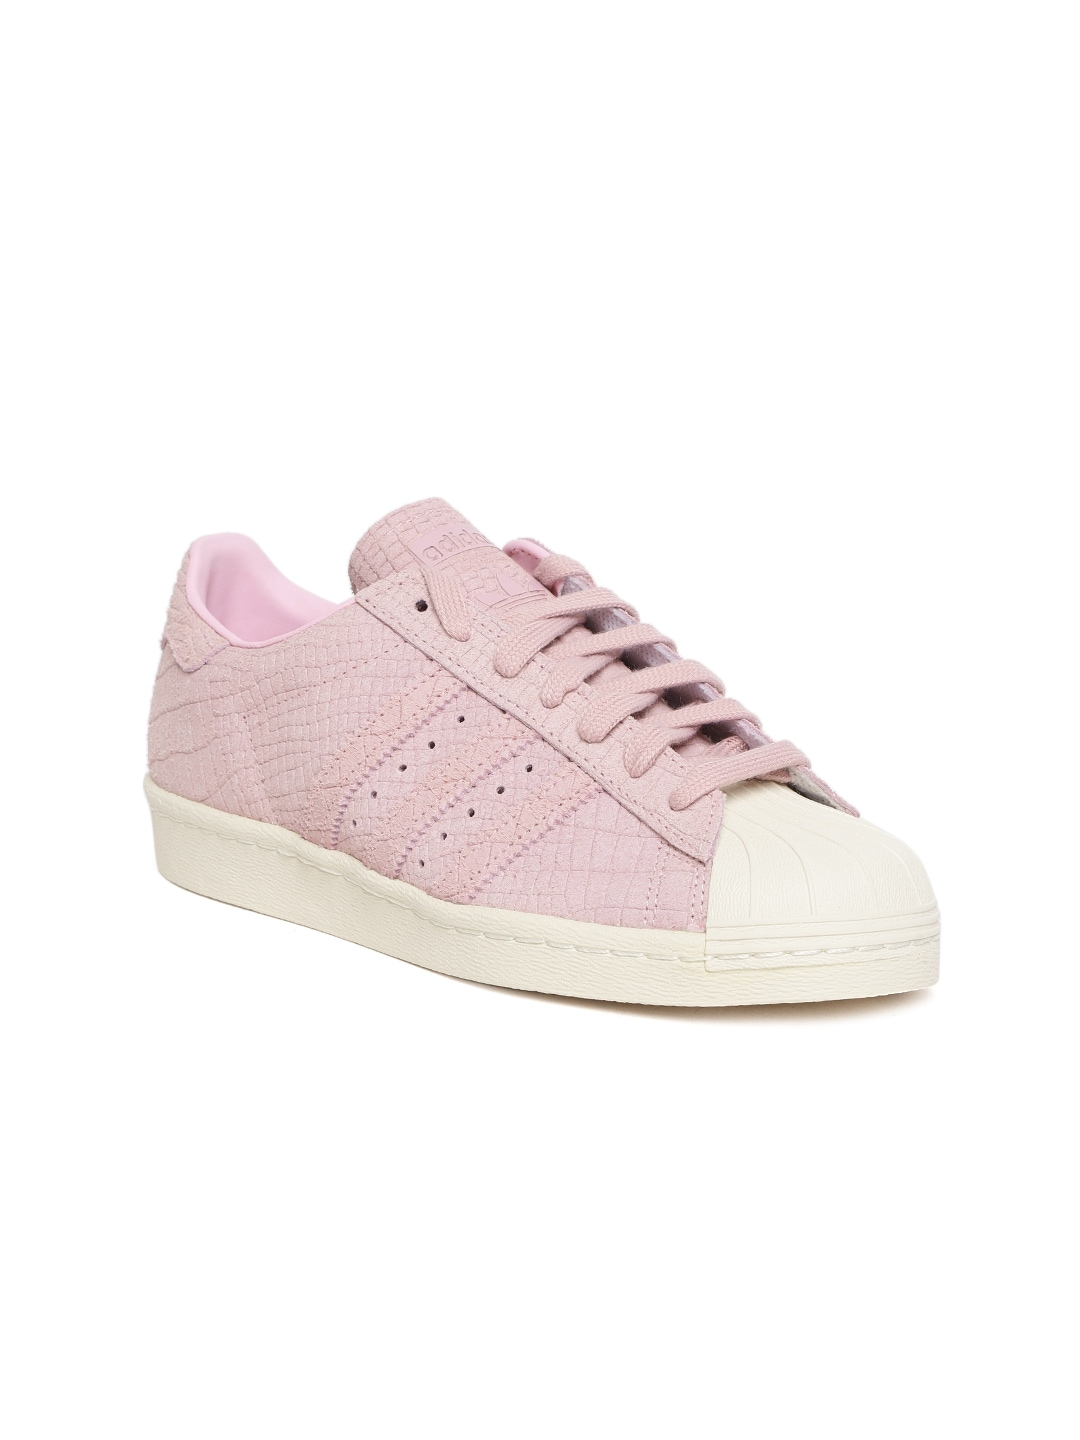 a89a90ee0 Adidas Originals Superstar Shoes - Buy Adidas Originals Superstar Shoes  online in India